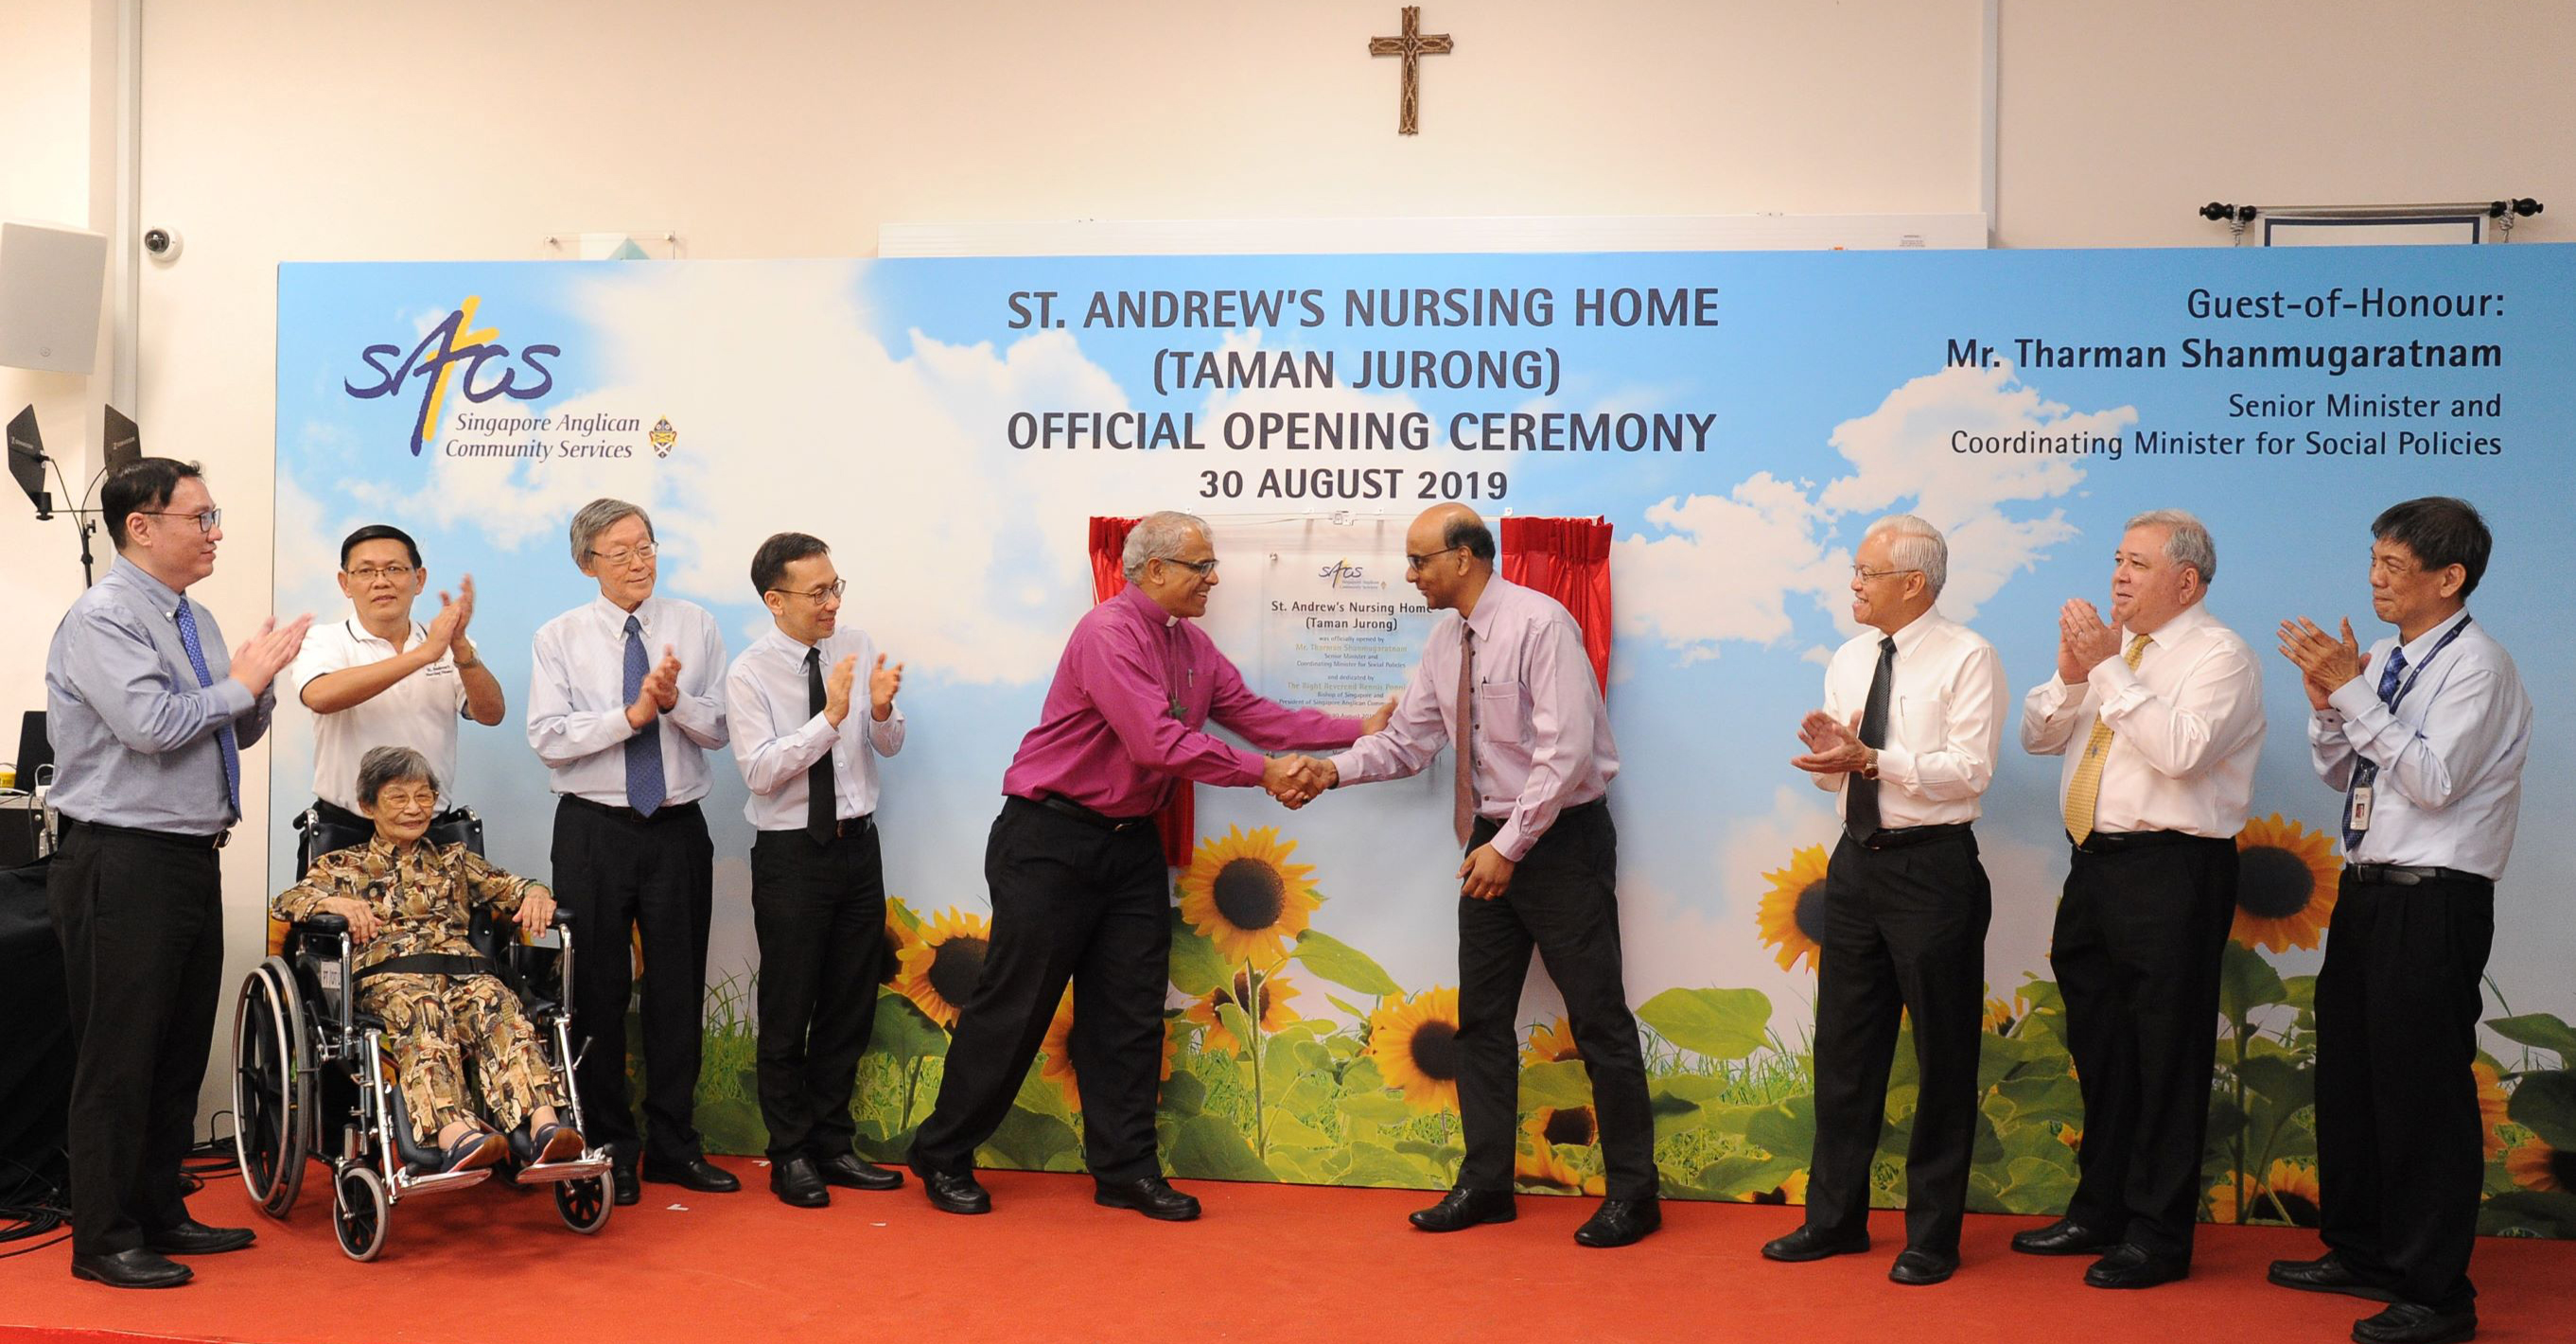 20190830_SANH_TJ_Opening A Day of Thanksgiving for St. Andrew's Nursing Home (Taman Jurong)